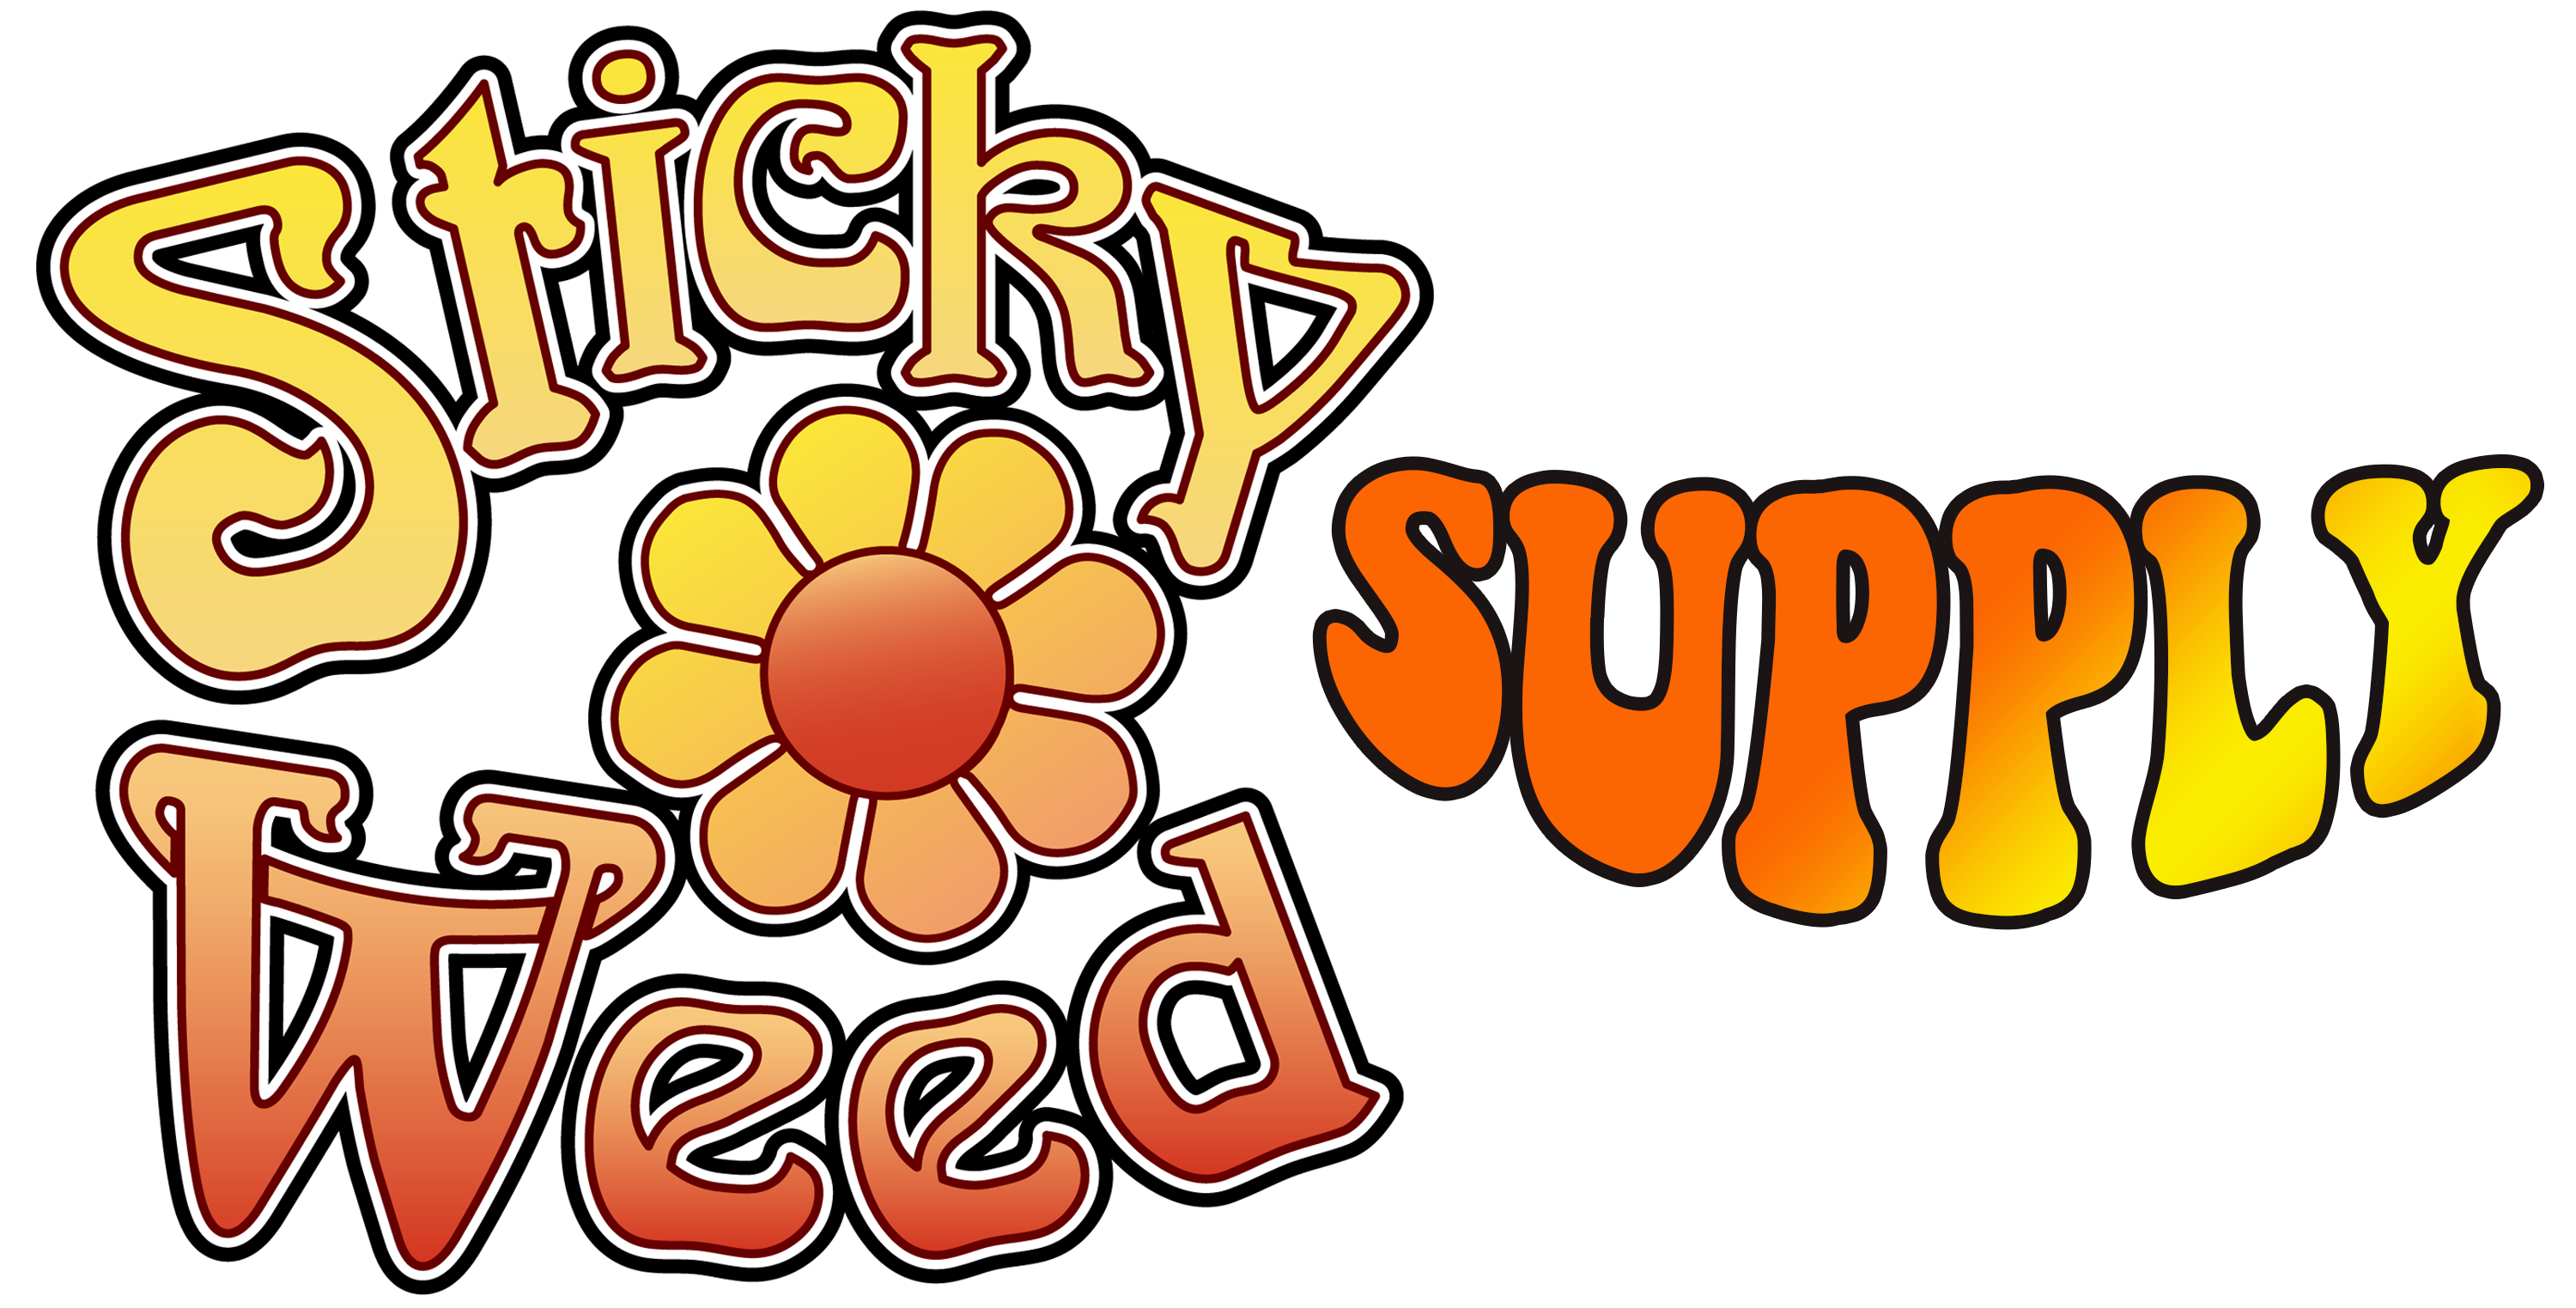 Sticky Weed Supply   Store